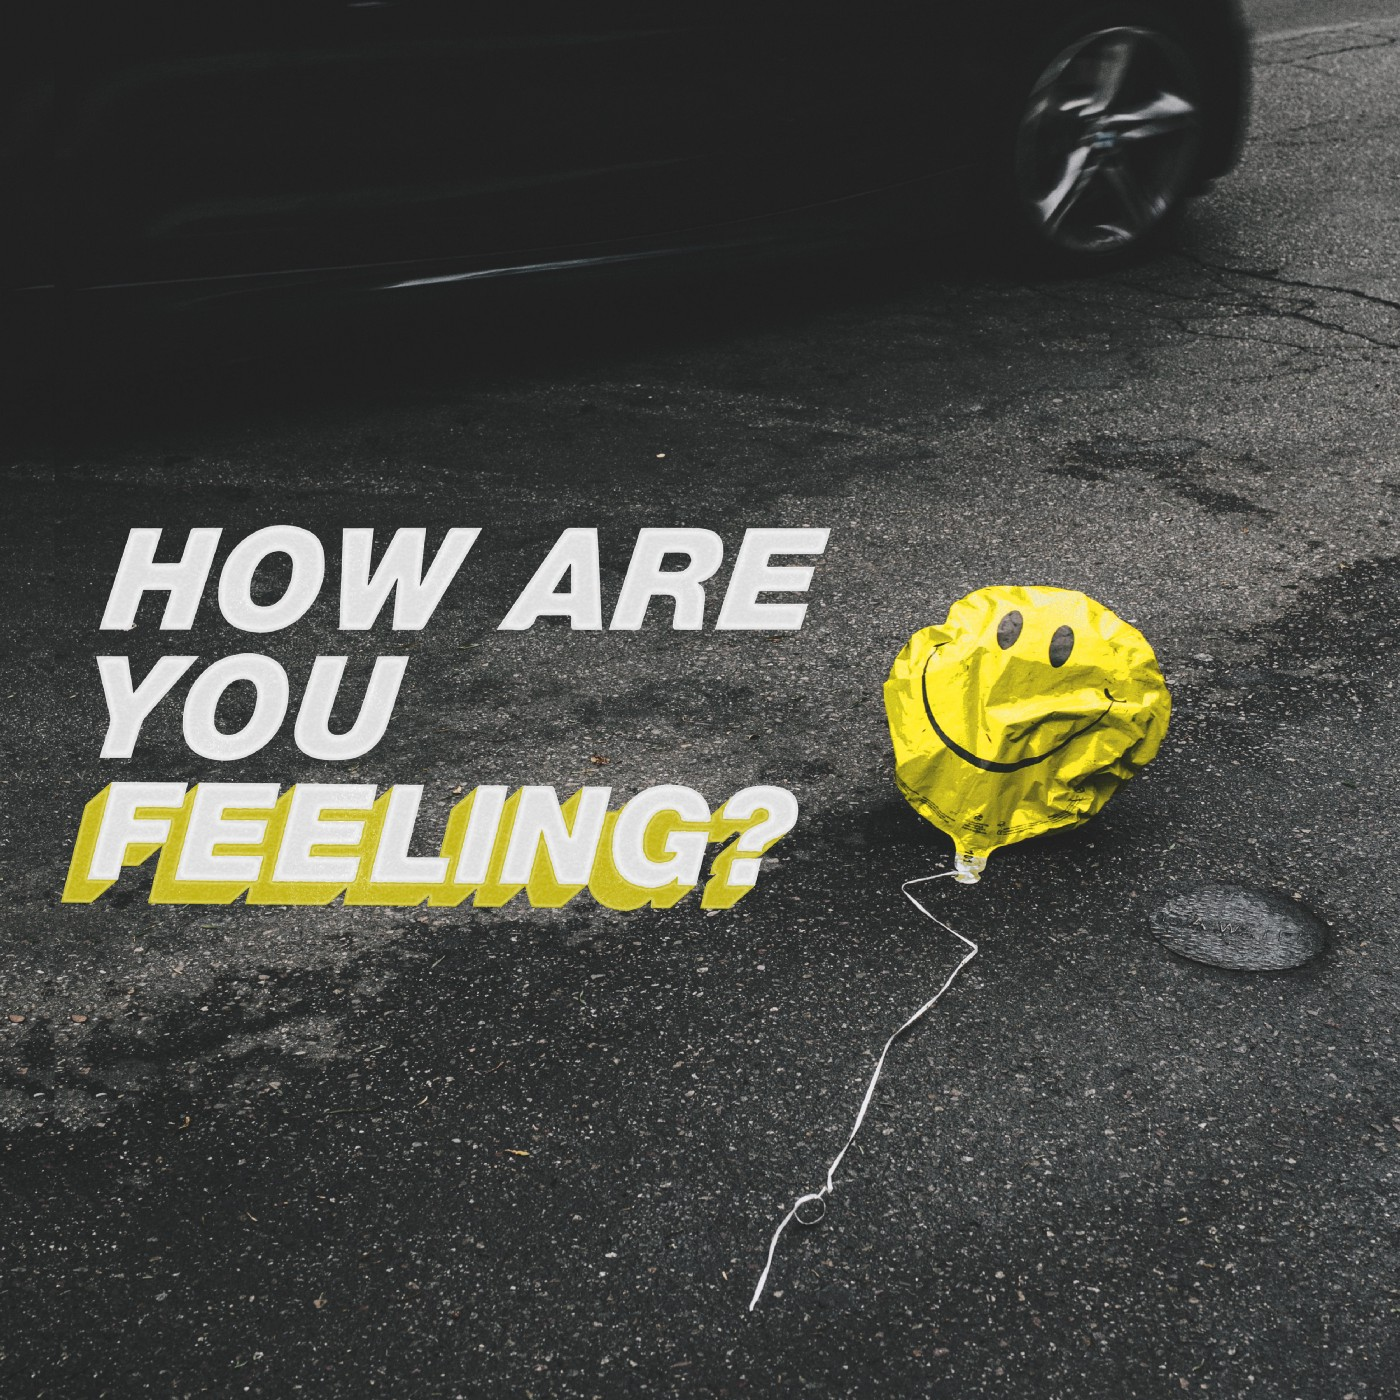 A deflating ballon with a smiley face and question that asks how are you feeling?